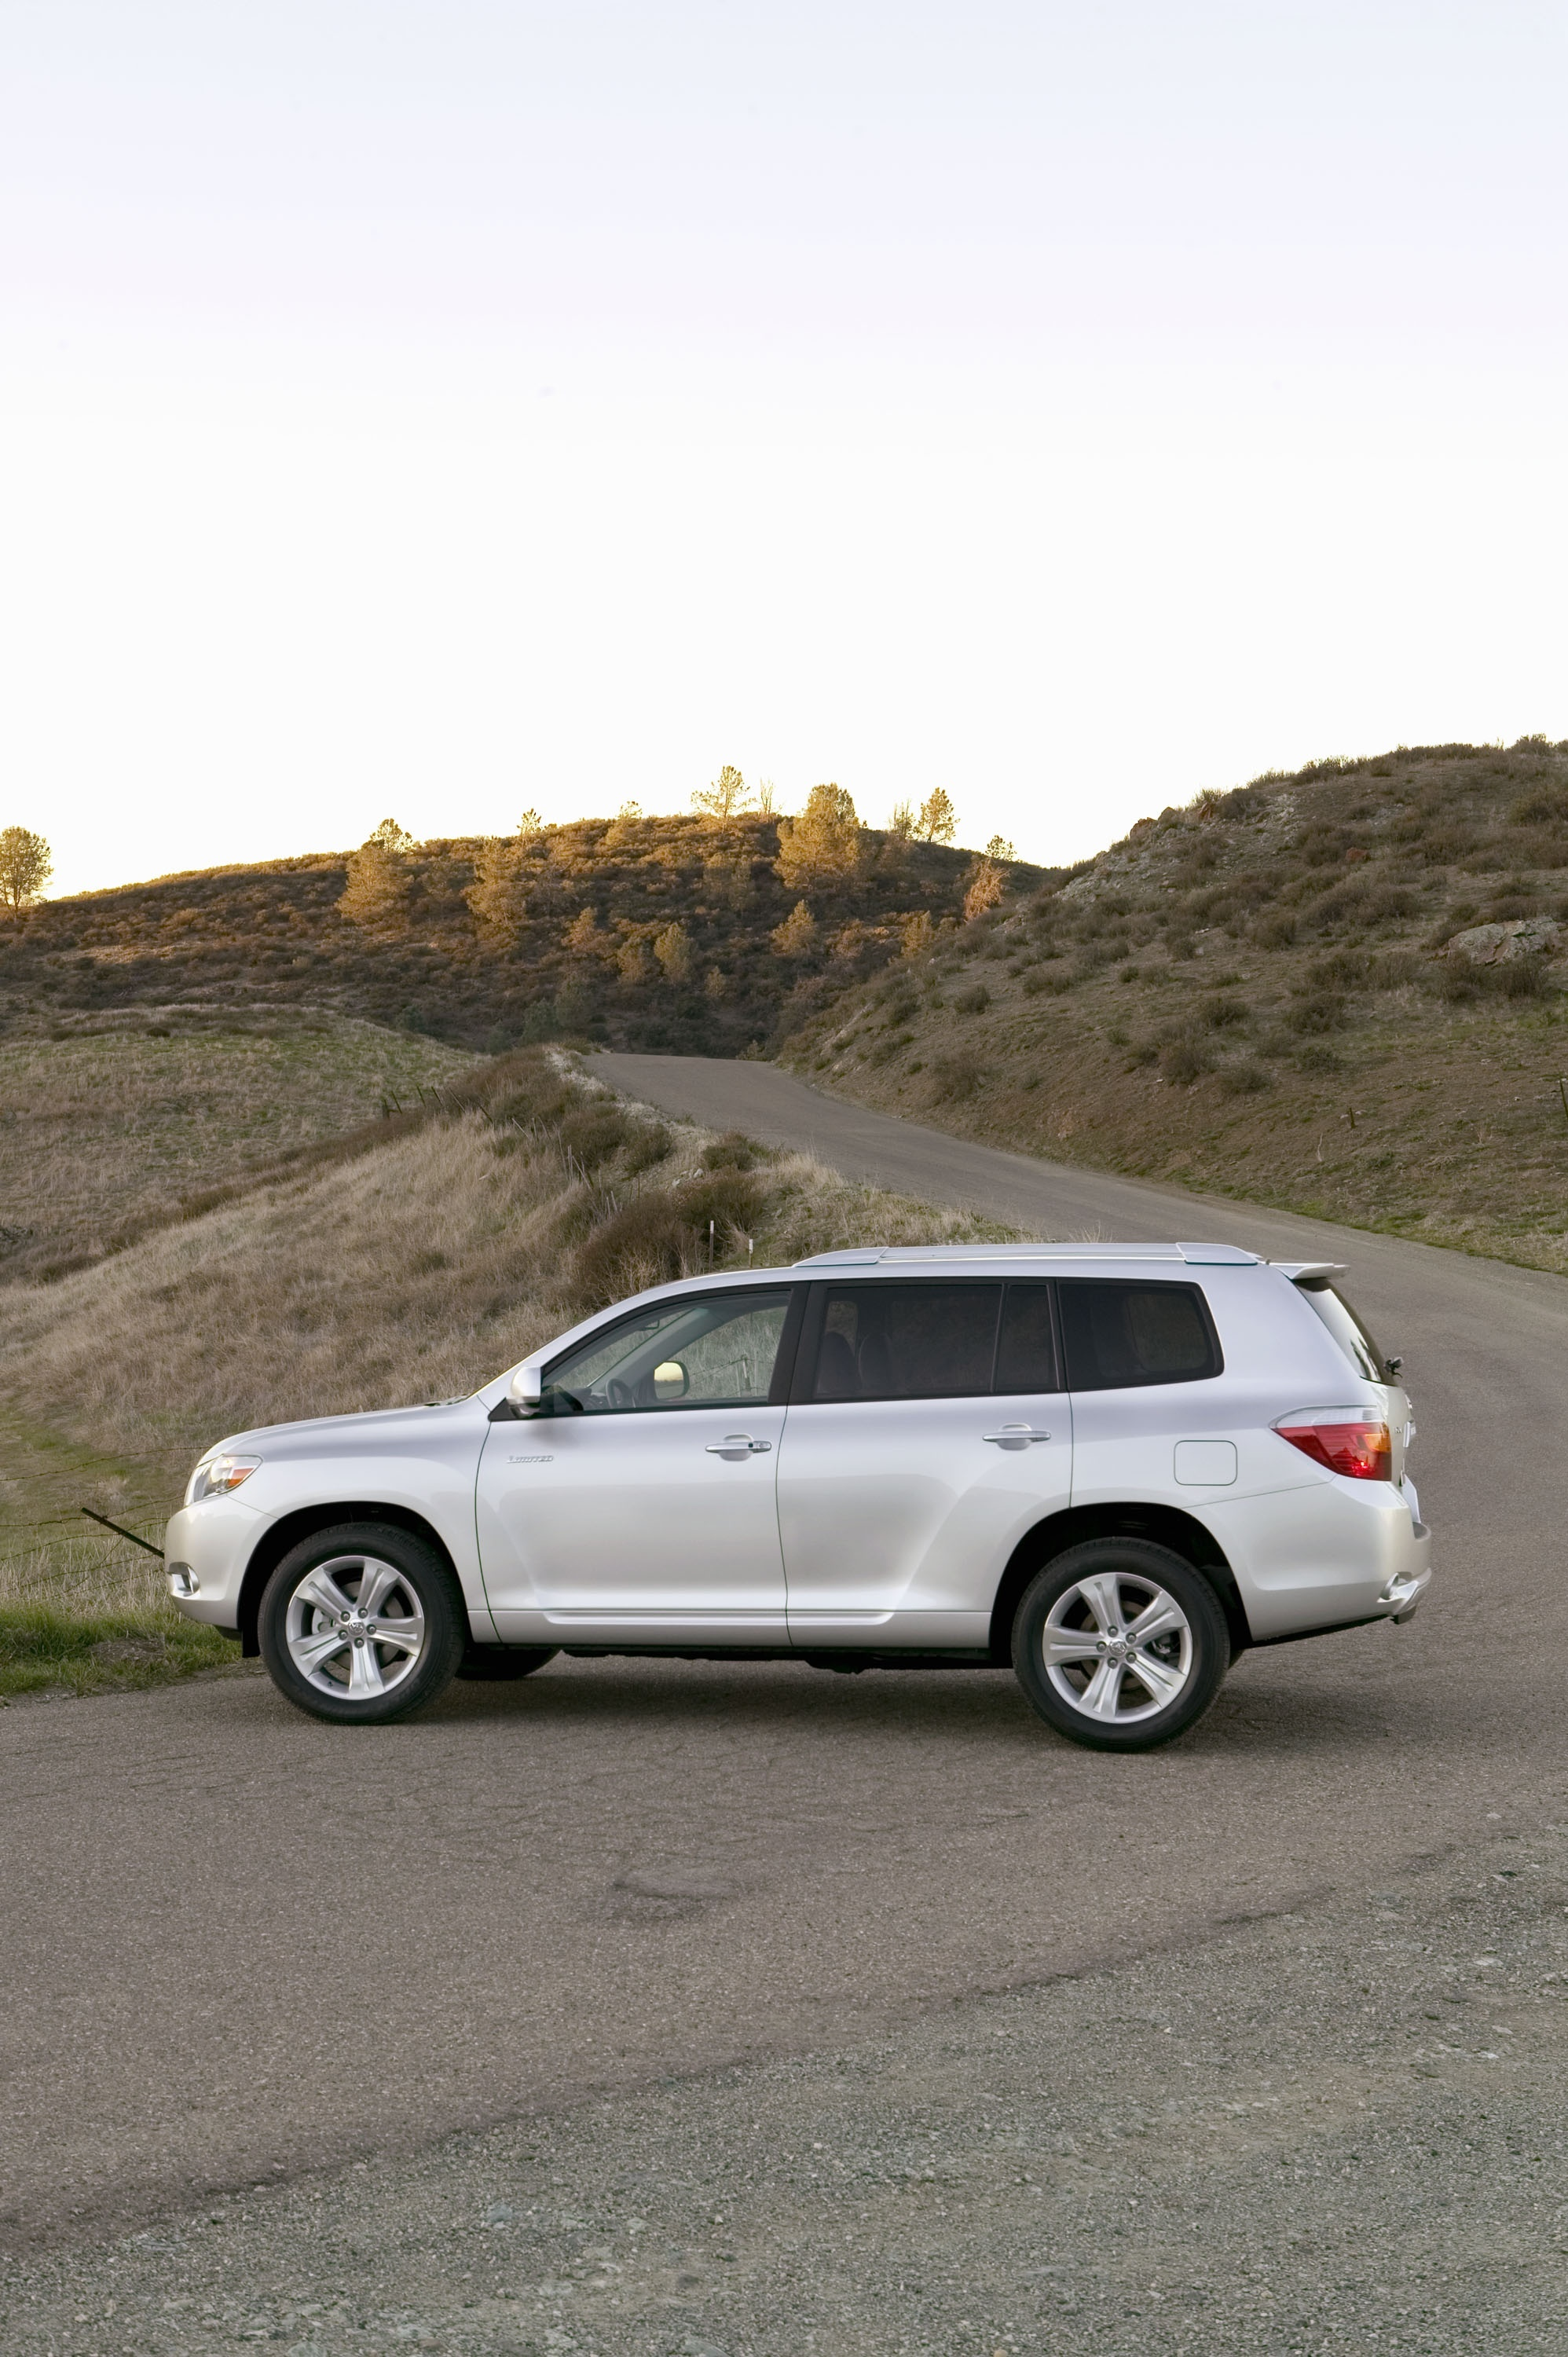 Toyota Highlander Towing Capacity >> Coming Soon - All-New Four Cylinder Engine For 2009 Toyota ...